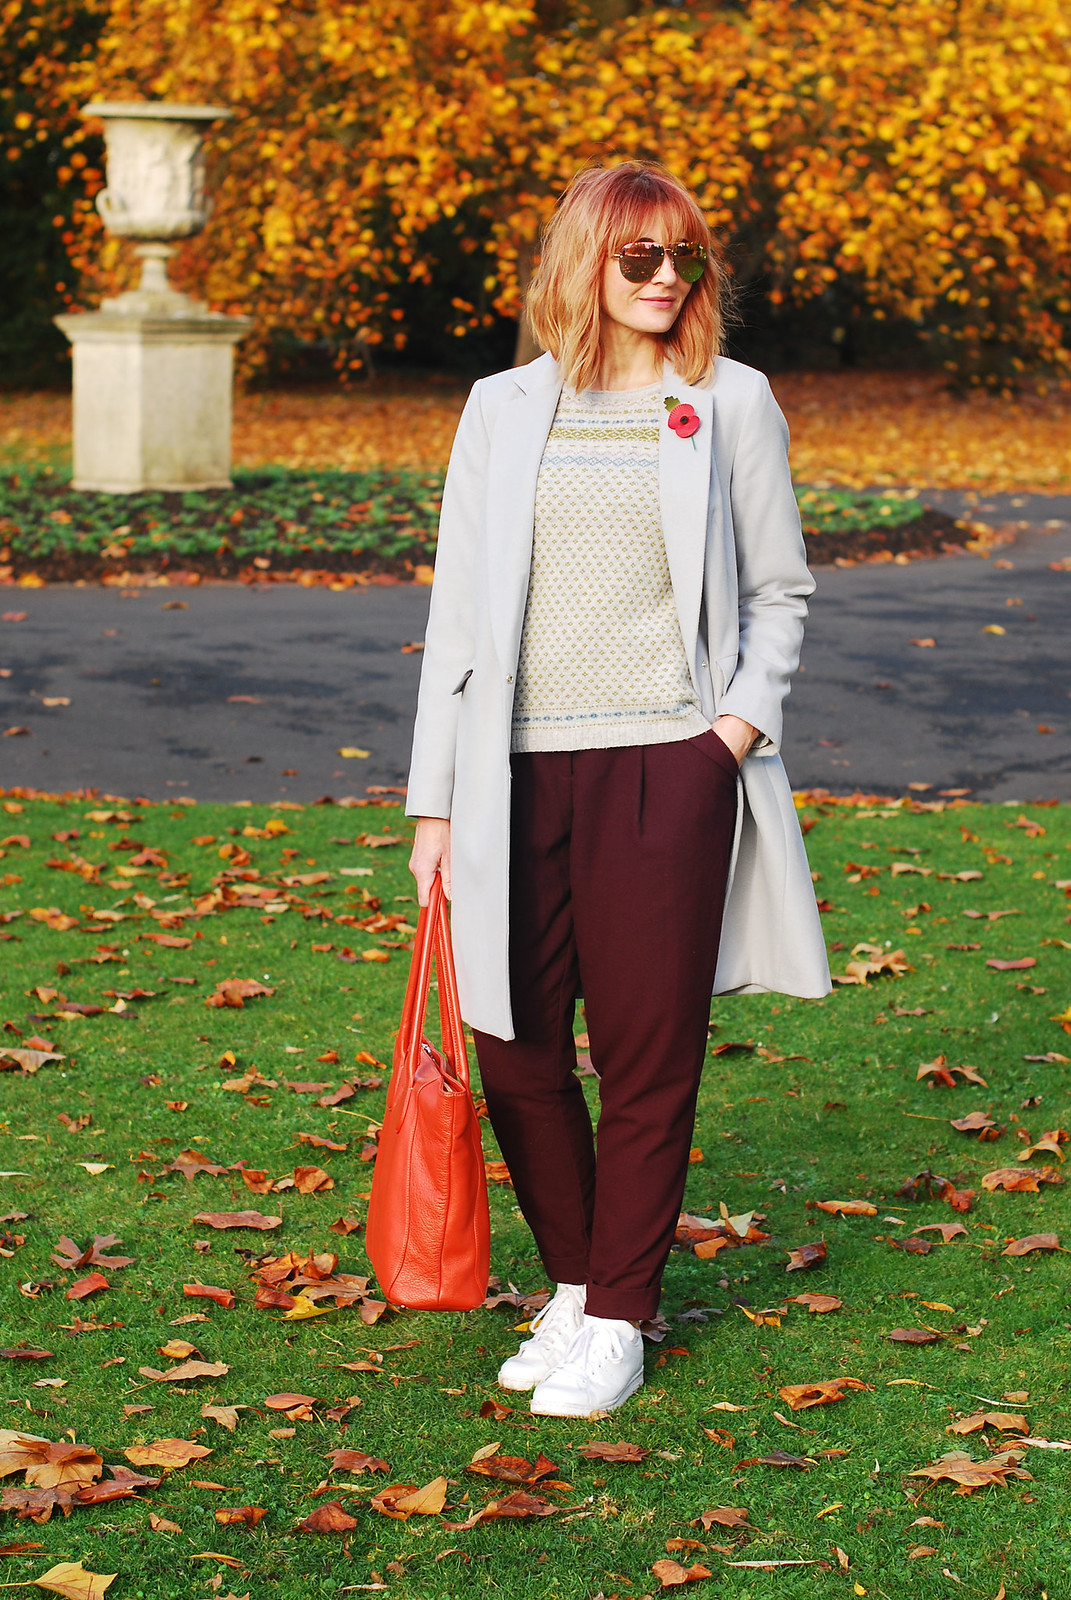 Autumn look \ fall outfit \ cold weather style \ grey duster coat, burgundy paper bag trousers, white Stan Smith sneakers, Fair Isle sweater | Not Dressed As Lamb, over 40 style